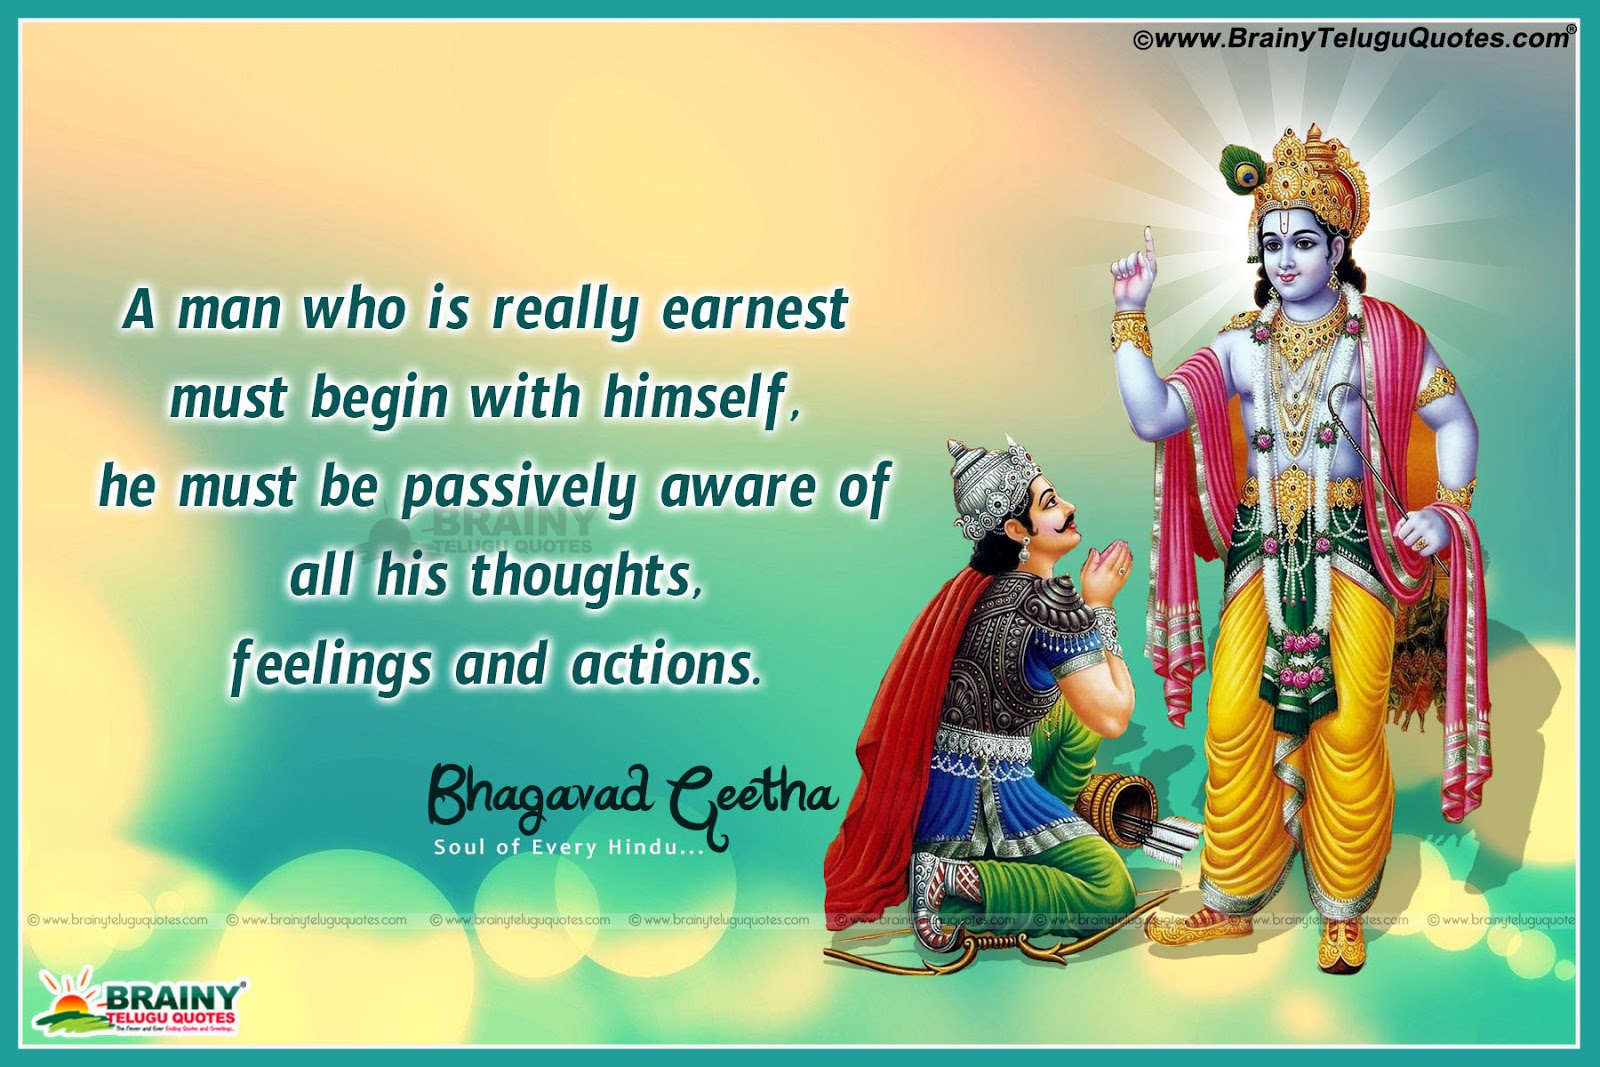 Lord Krishna Quotes Best Bhagavad Gita Quotes And Sayings In English With Wallpapers